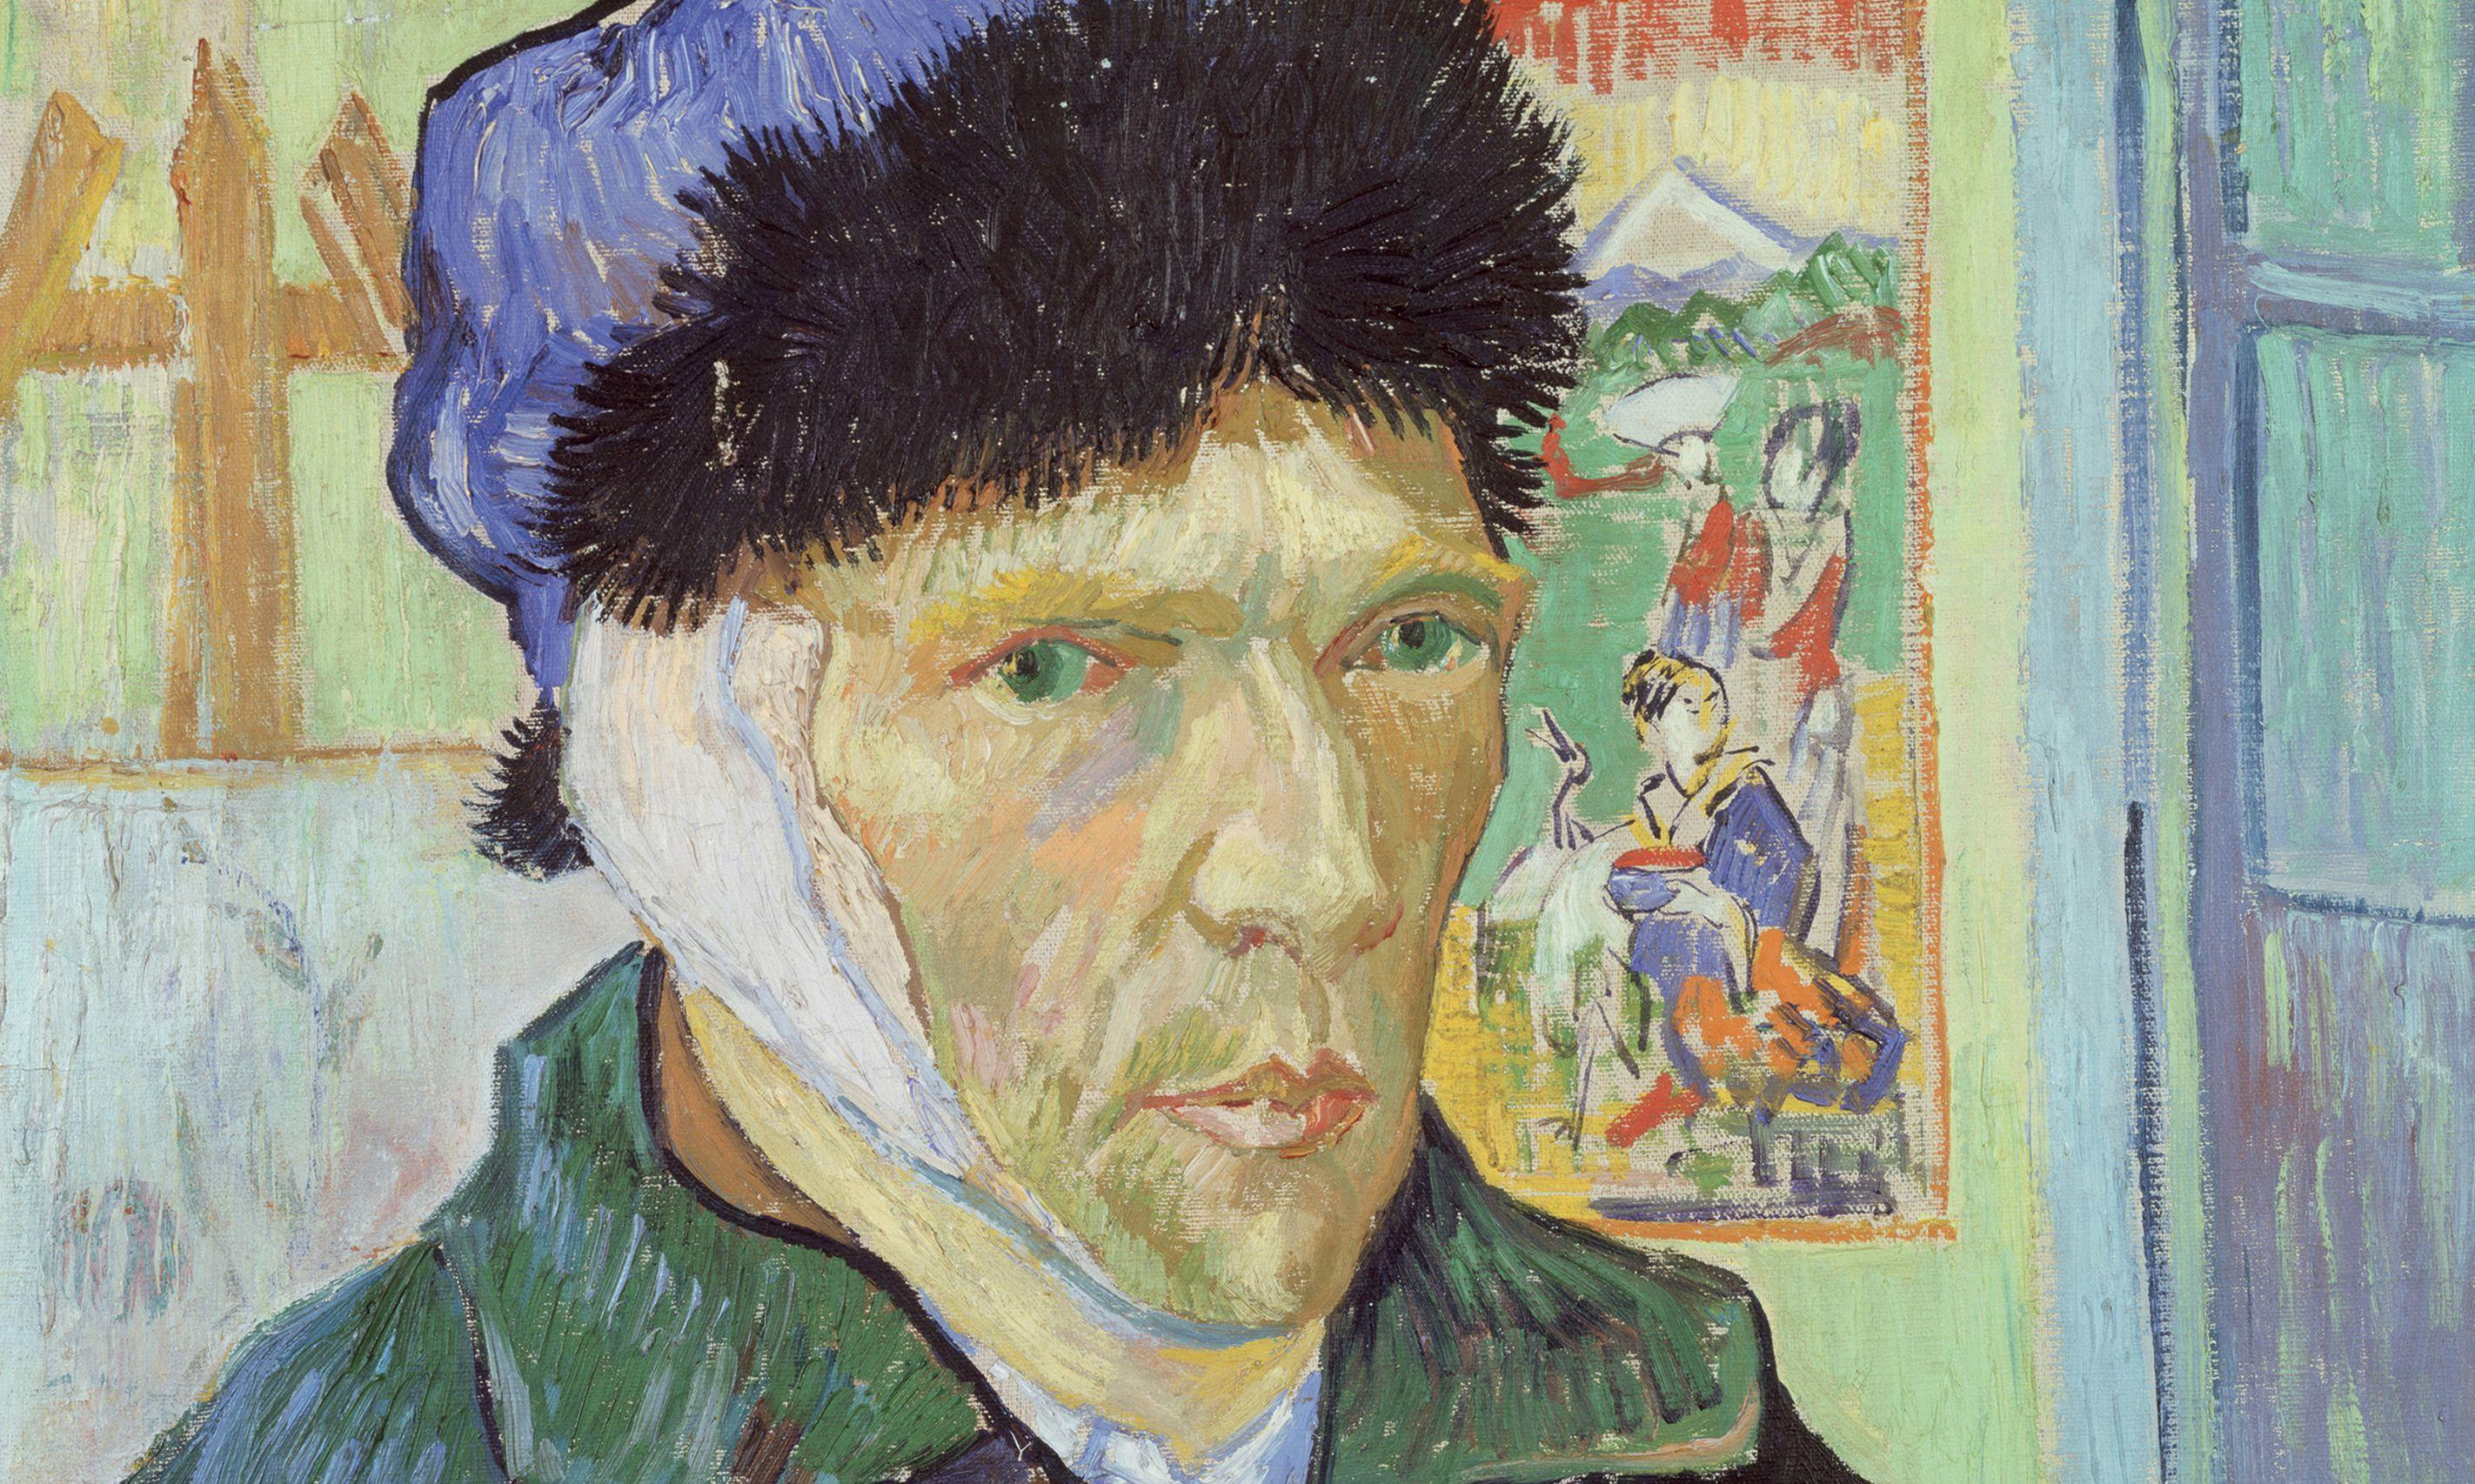 Van Gogh's gushing letter to art critic goes on show in Amsterdam